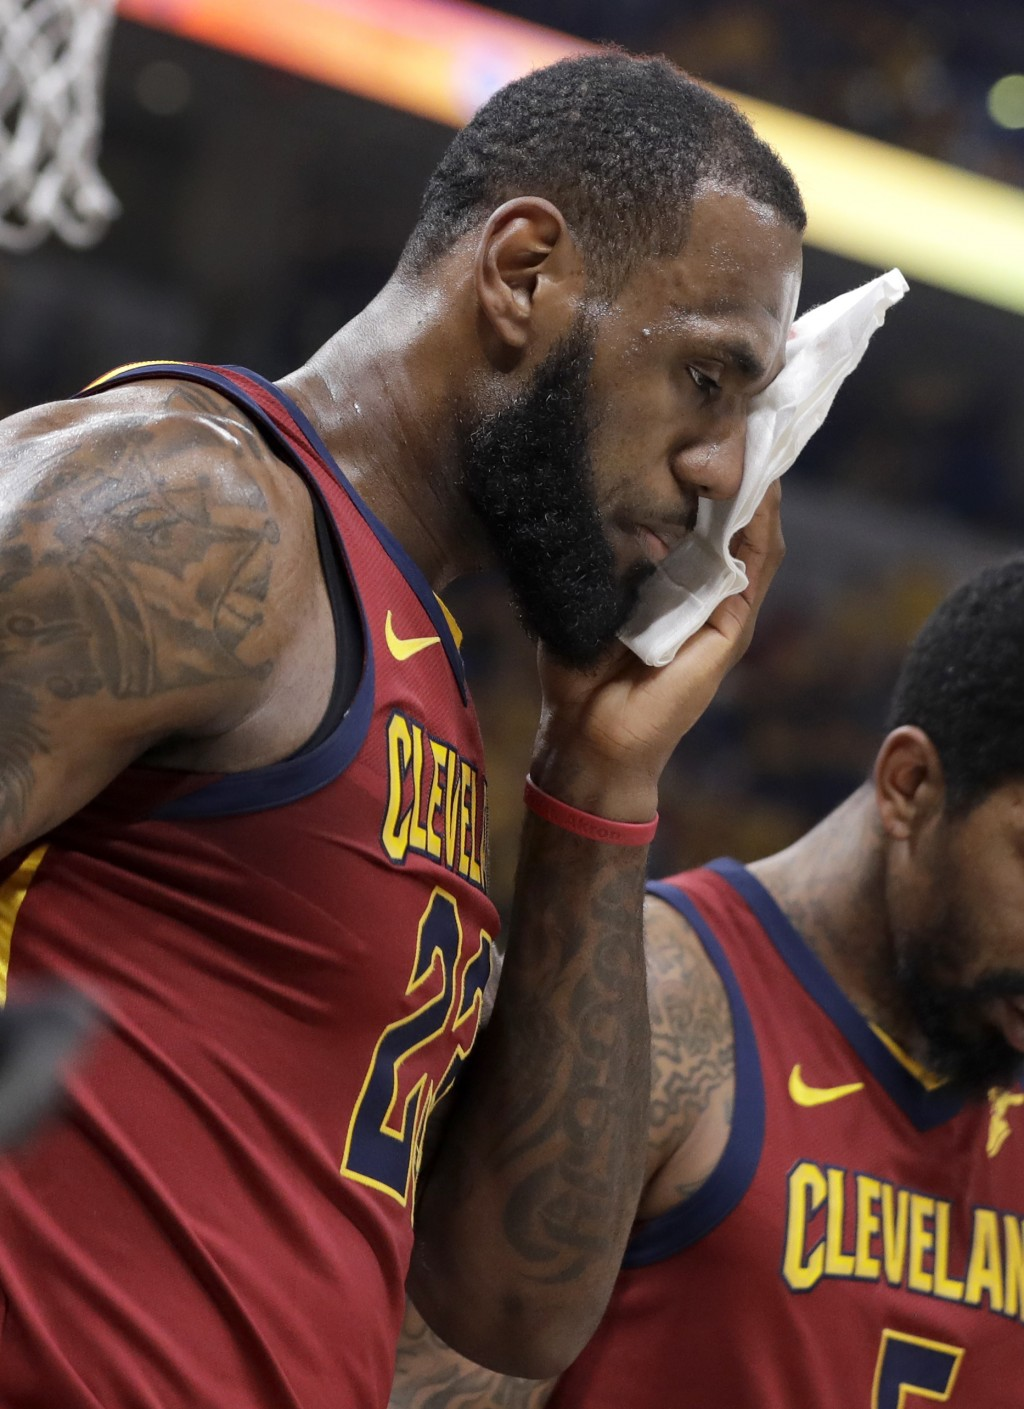 Cleveland Cavaliers' LeBron James holds a cloth to a cut above his eye after being injured on a drive to the basket during the first half of Game 6 of...